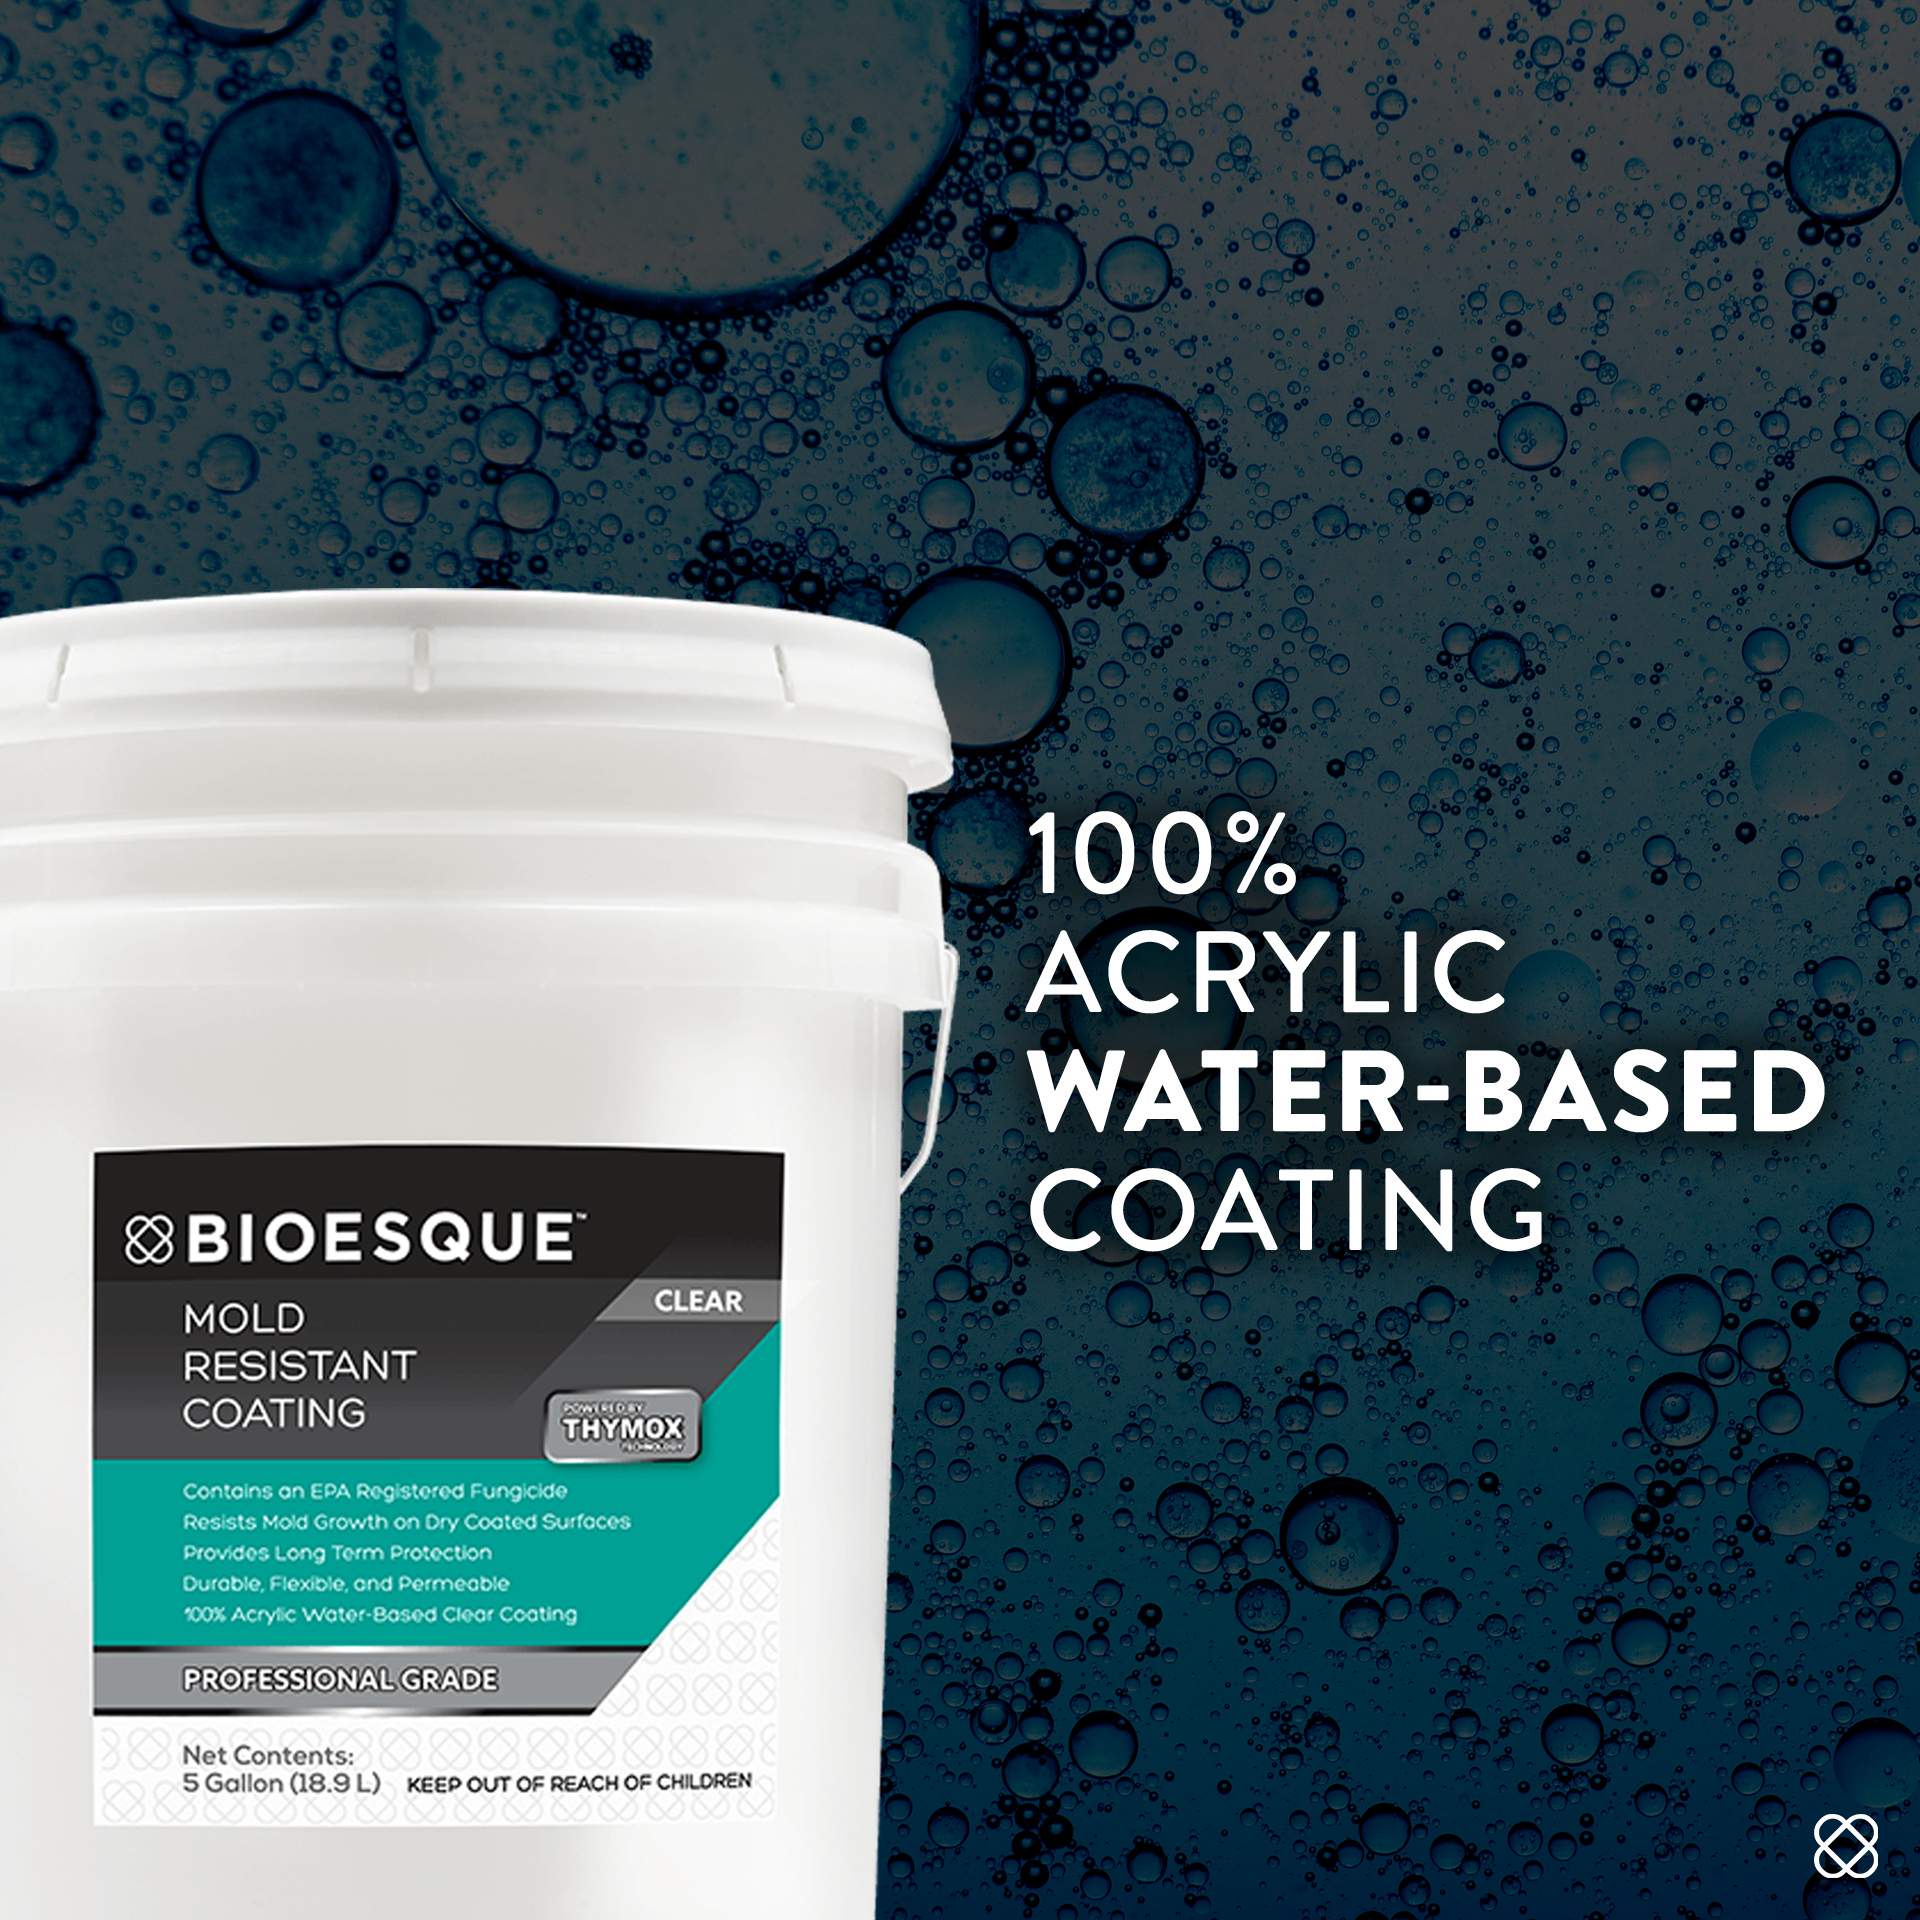 Bioesque Mold Resistant Coating Is A Superior Choice In Cleaning Products For The Restoration Industry